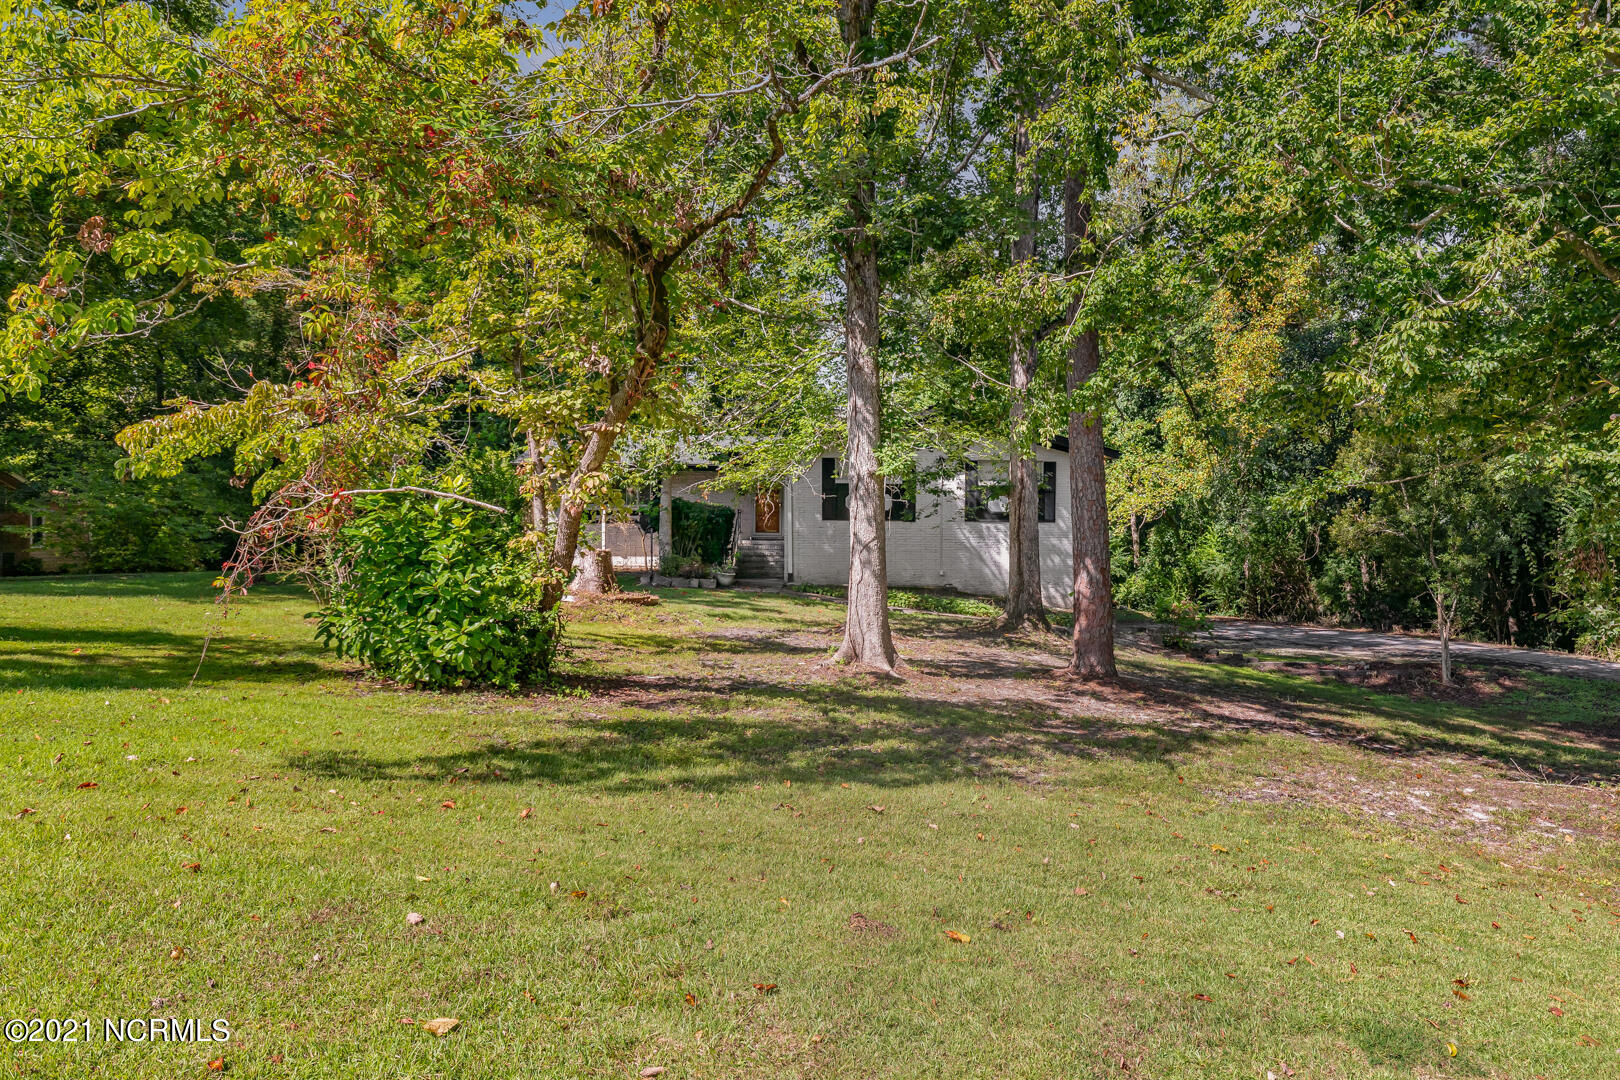 Tired of cookie cutter neighborhoods?  Looking for a home with personality that you can make yours?  HERE IT IS, with a $10,000 upgrade allowance!!  Country Club Acres is an established neighborhood located in the heart of Jacksonville, near area beaches, shopping and military bases. This home has tons of character with over 3000 heated square feet; mature trees and shrubbery surrounding the property, small creek running behind the home, two-car garage, a full basement, insulated interior walls, and much more! On the main living area of your new home you find three bedrooms, two bathrooms, a large living space with hardwood floors, kitchen with stainless steel appliances, fireplace with small area boasting outlets at the floor & high on the wall to allow your imagination to become reality with whatever you choose to do with it, tons of closet space and just under an acre of land! The finished basement is an entertainer's dream, two large open areas, 11x7 room, full bath, storage closets, and laundry room.  Don't miss out, make your appointment--TODAY!